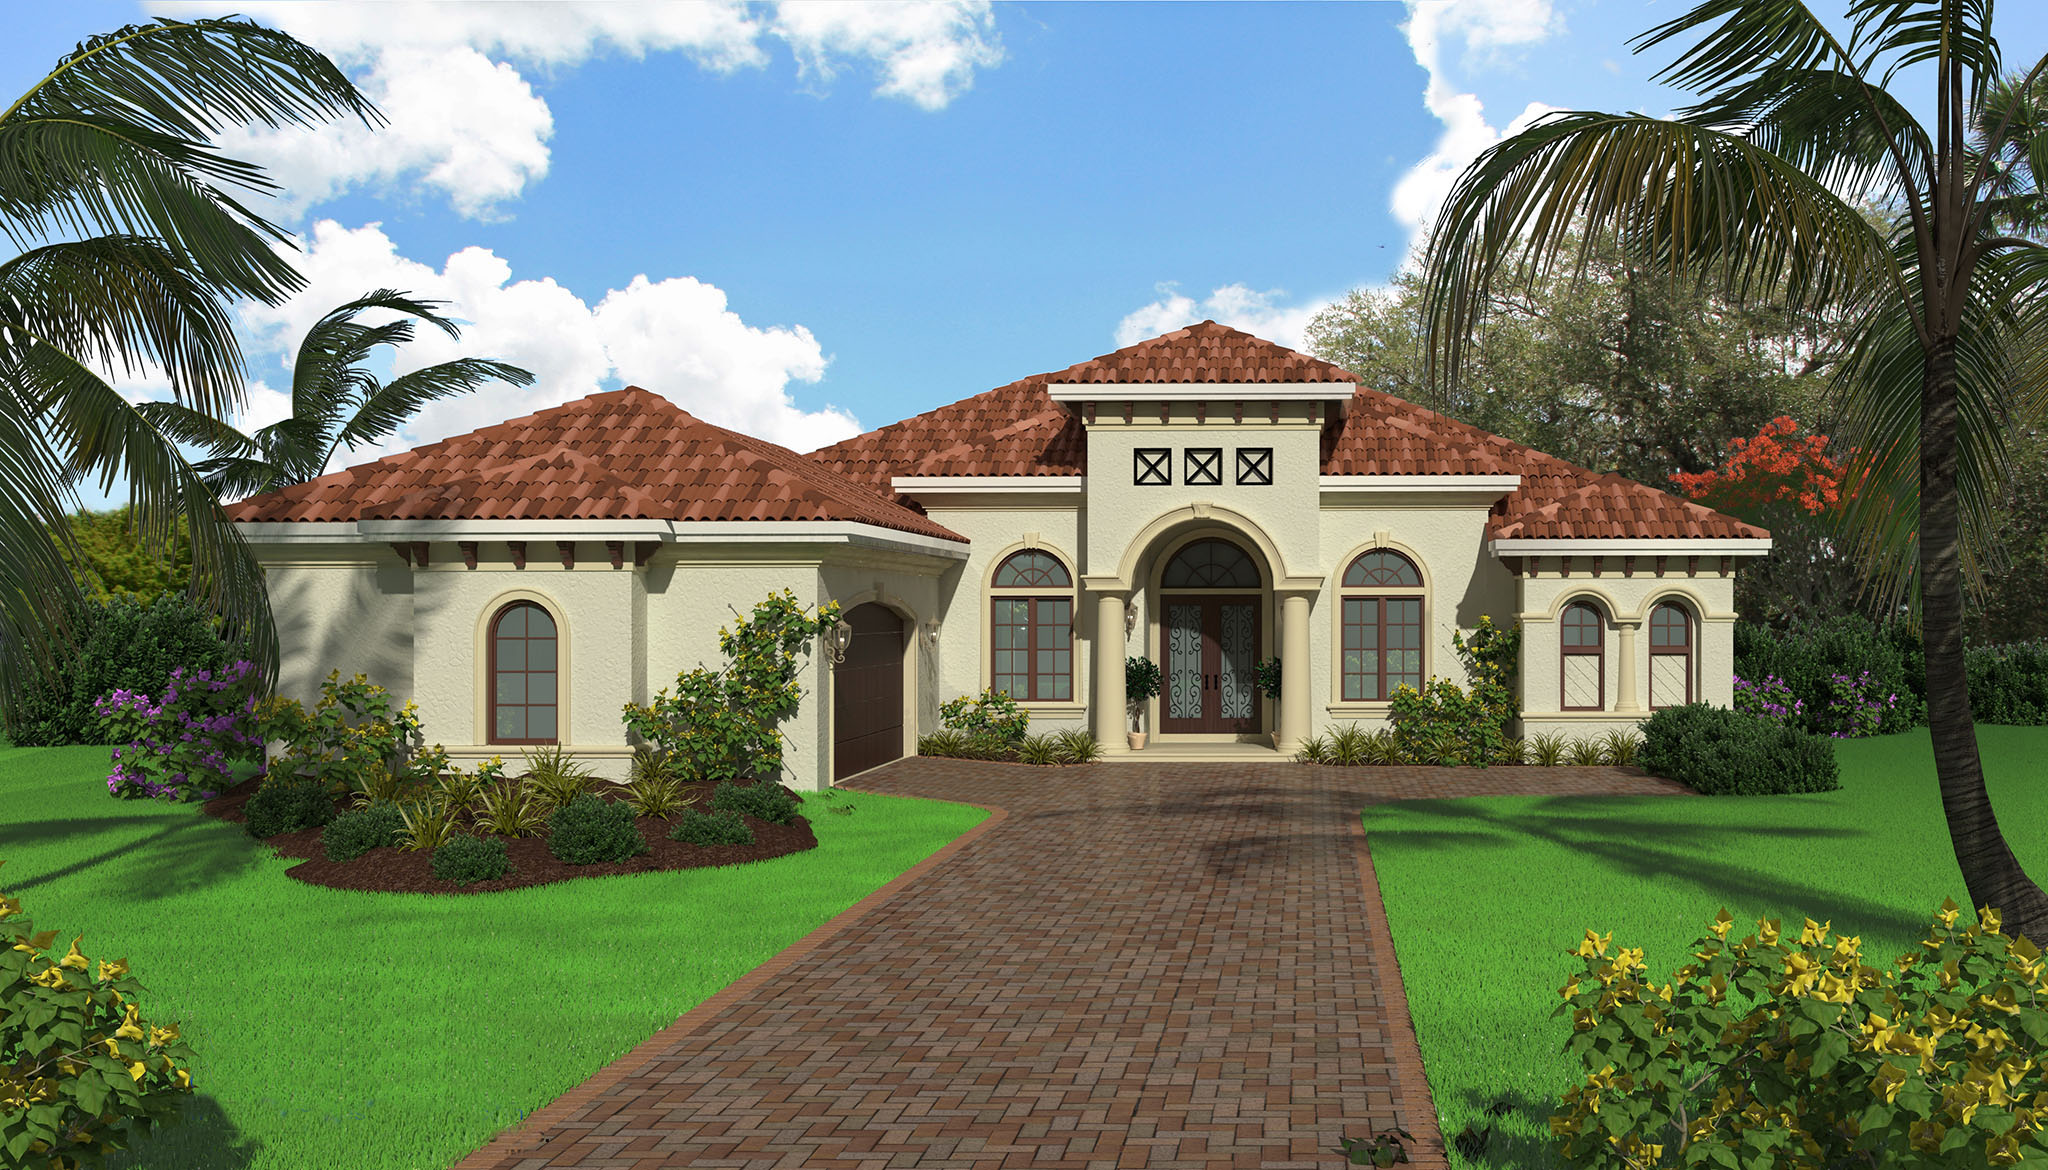 Plan1751133MainImage_23_5_2016_17 One Story Spanish House Designs on mediterranean spanish house, two tone stucco style house, antique house, ominous house, contemporary spanish house, traditional spanish house, one story spanish home, duplex spanish house,